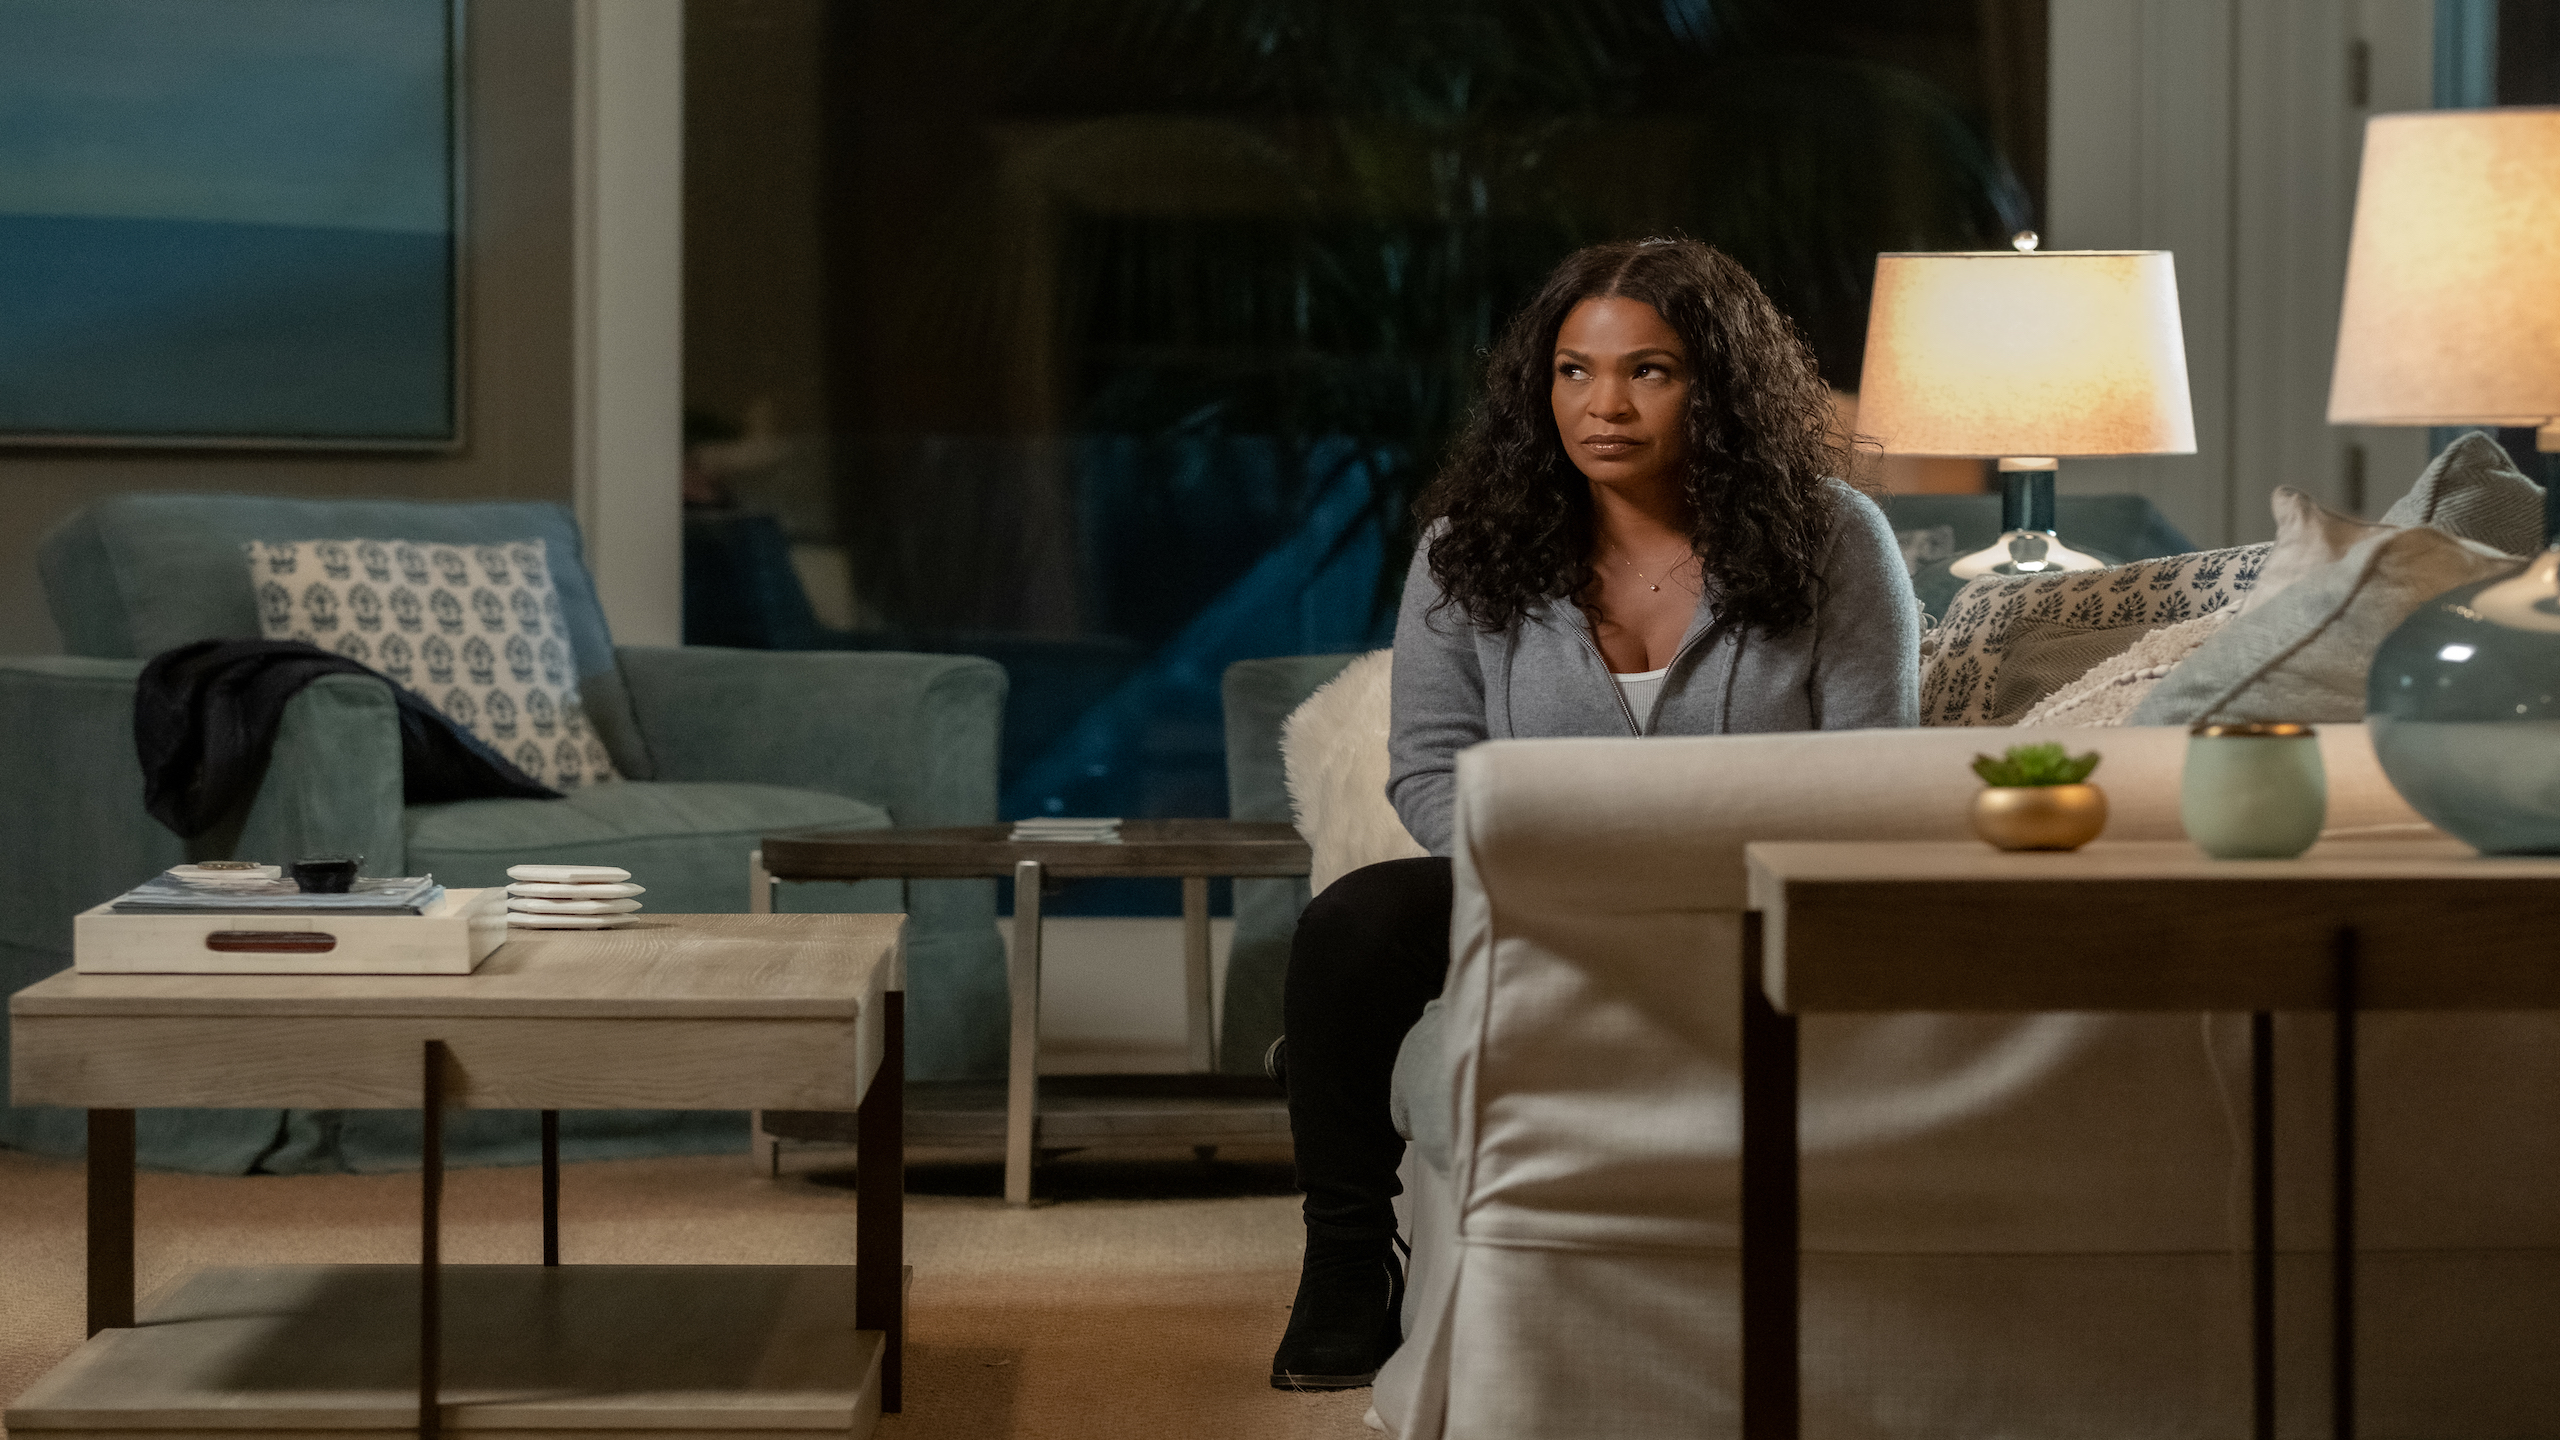 FATAL AFFAIR: NIA LONG as ELLIE. Cr. BETH DUBBER/NETFLIX © 2020